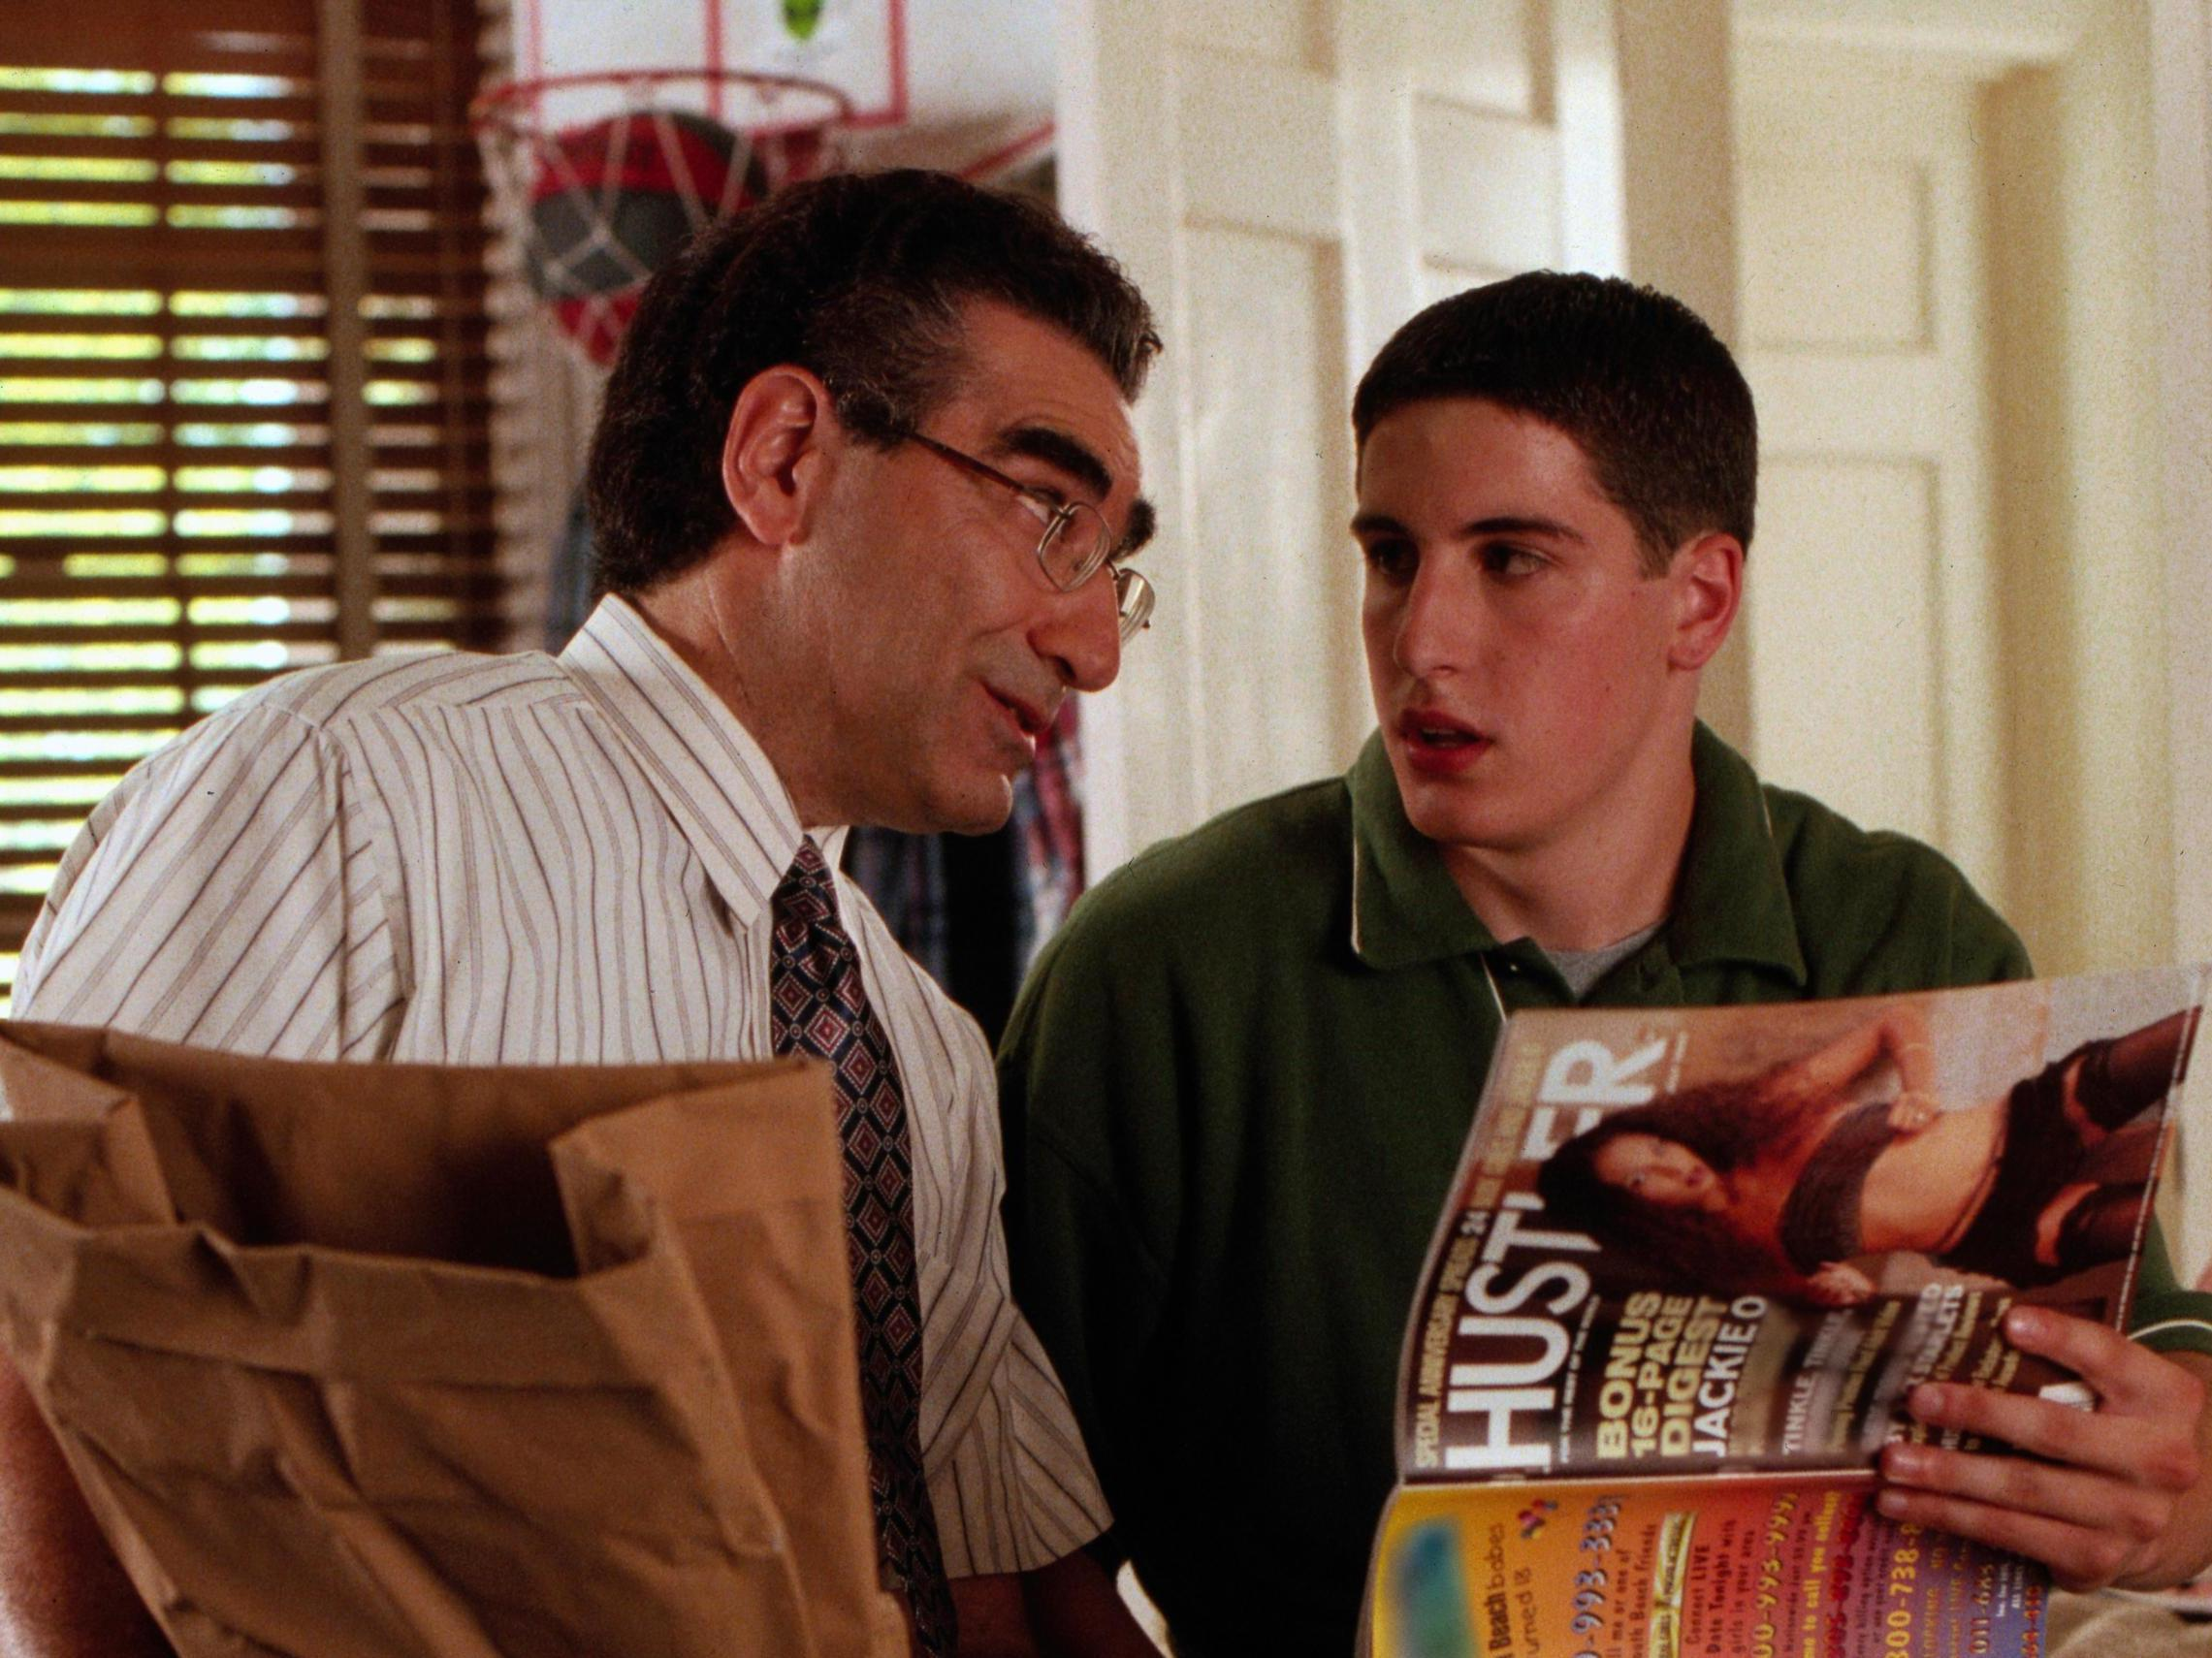 American Pie wouldn't get made today – according to its director, that's 'probably a good thing'